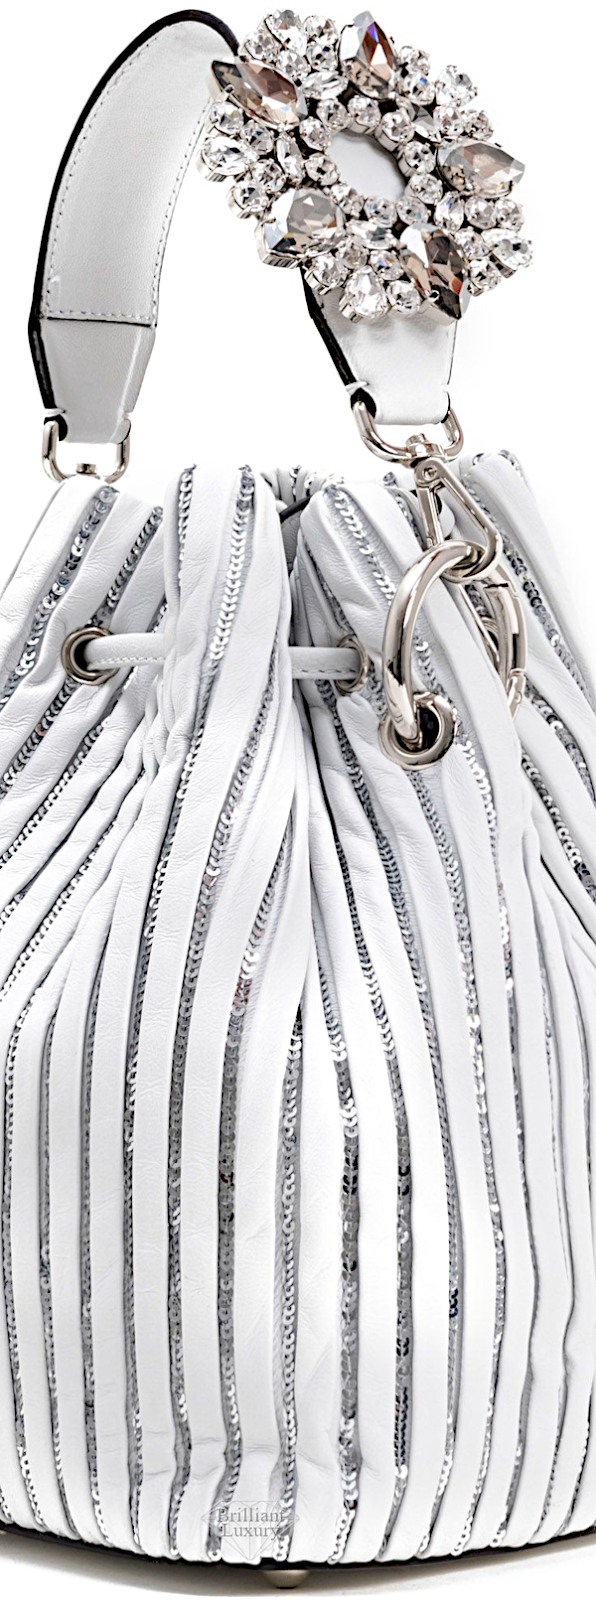 Brilliant-Luxury-Gedebe-Bucket-Bag-Paillettes-Crystal-Buckle-accessories-2019